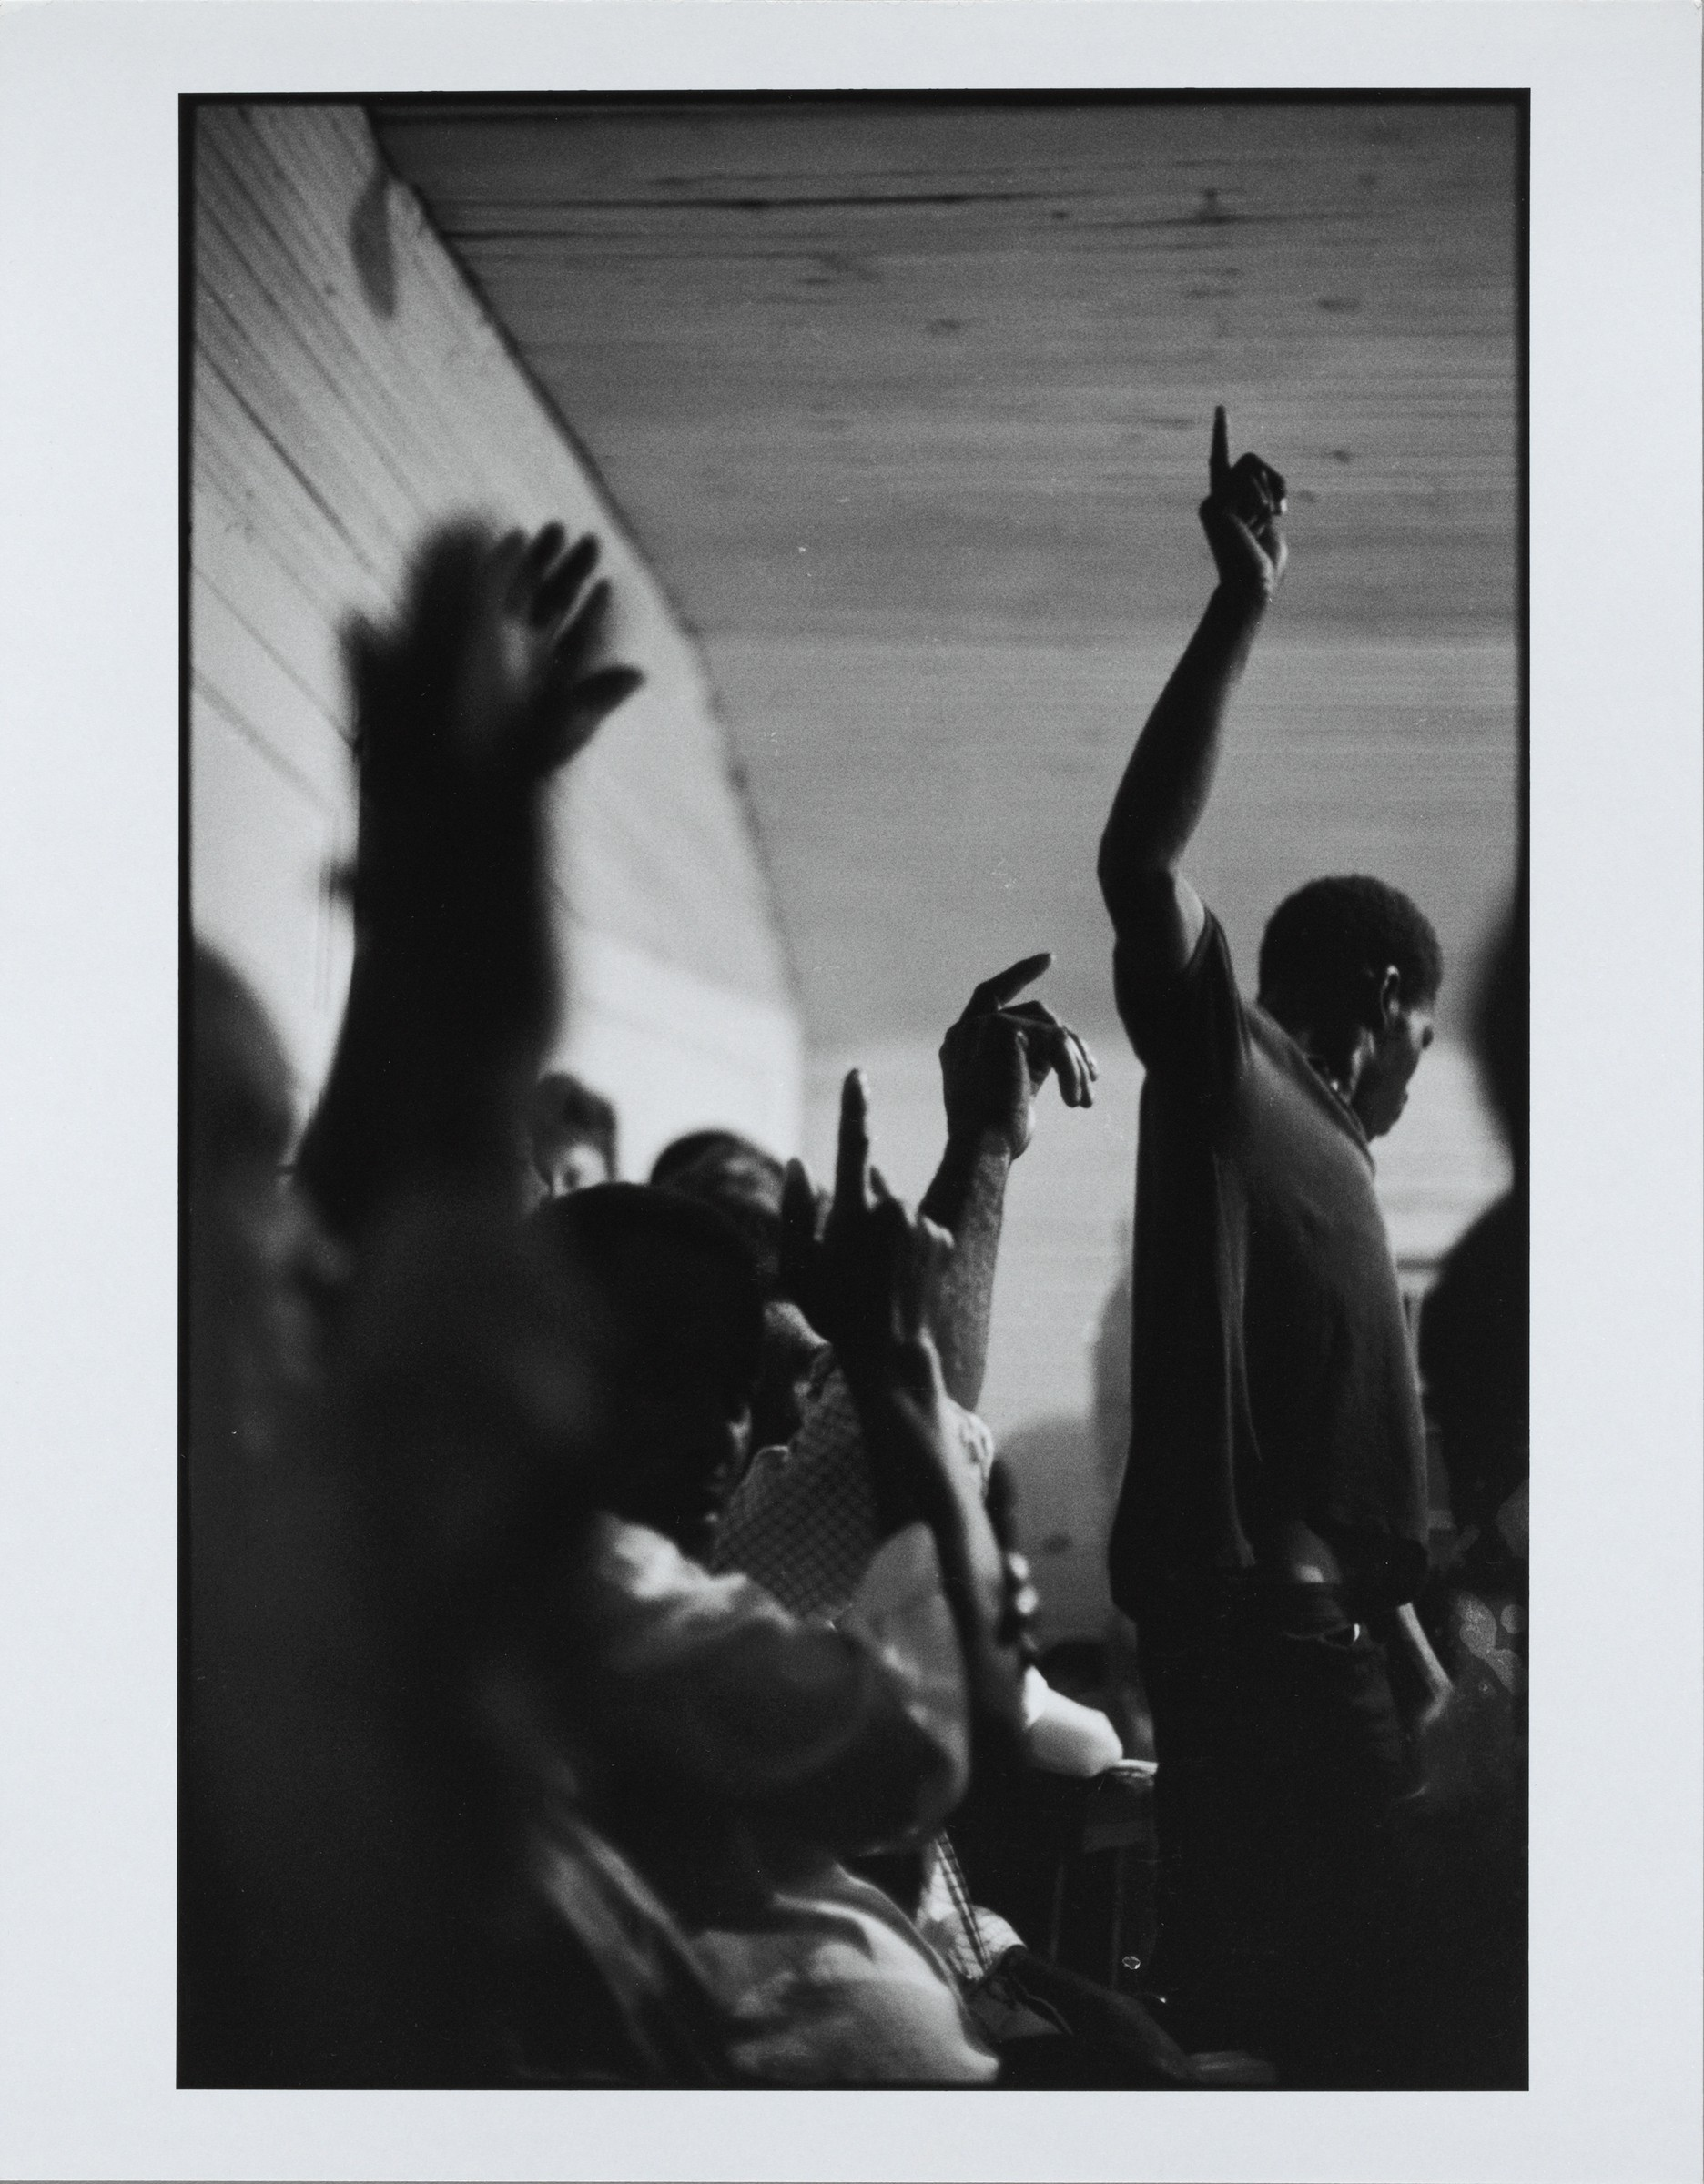 This black and white photograph captures a crowd of Black men and women in a room. To the right, a tall man in dark clothing raises his right arm, with his index finger pointing up. More people appear on the left; it is hard to make out details, but several raise their arms. The figure at the left edge of the image is blurry.